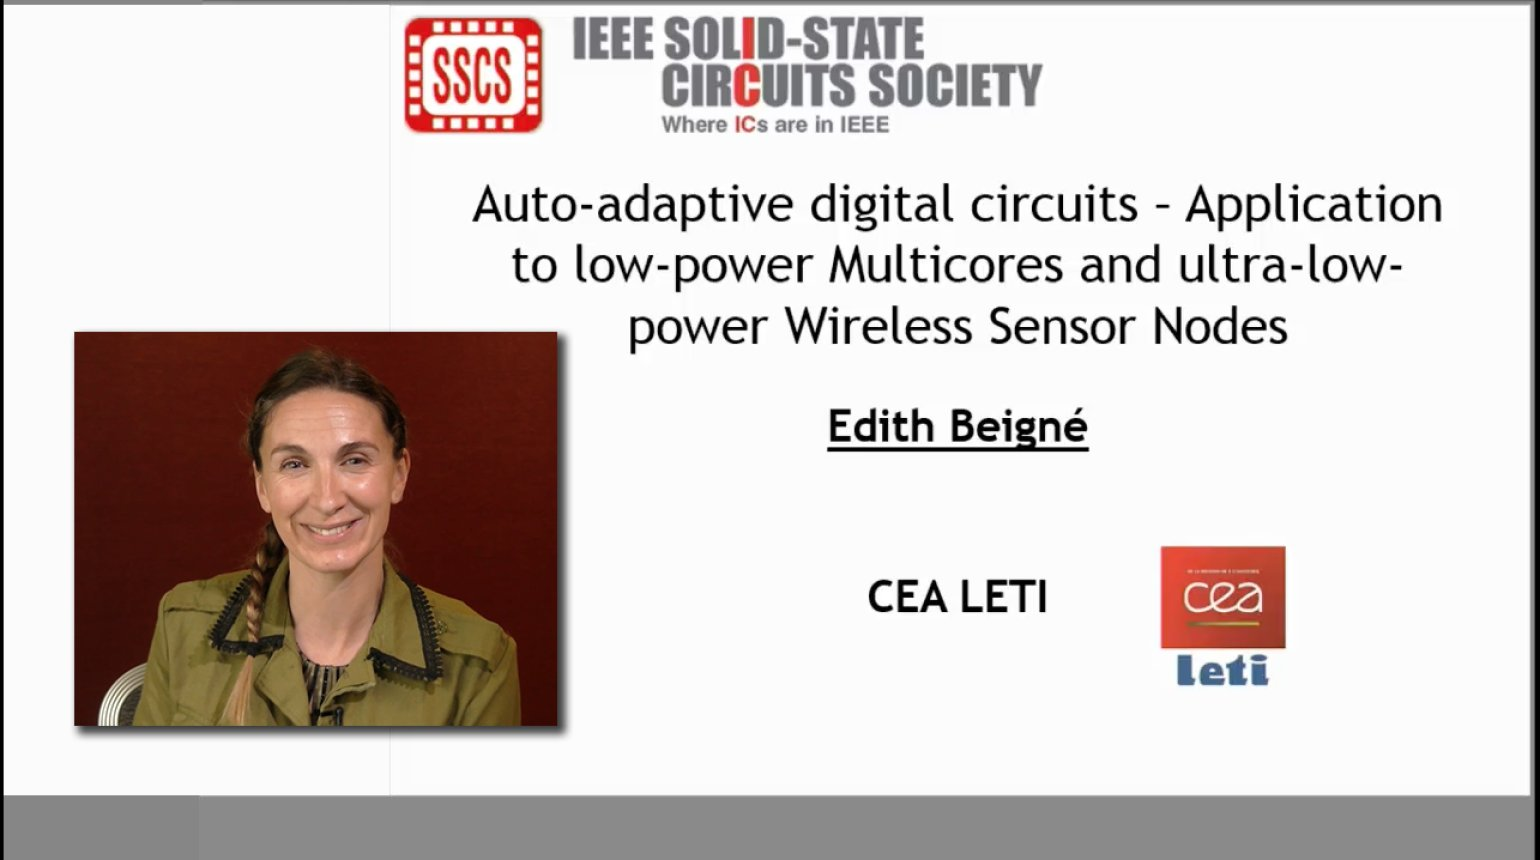 Auto-adaptive digital circuits -Application to low-power Multicores and ultra-low-power Wireless Sensor Nodes Video